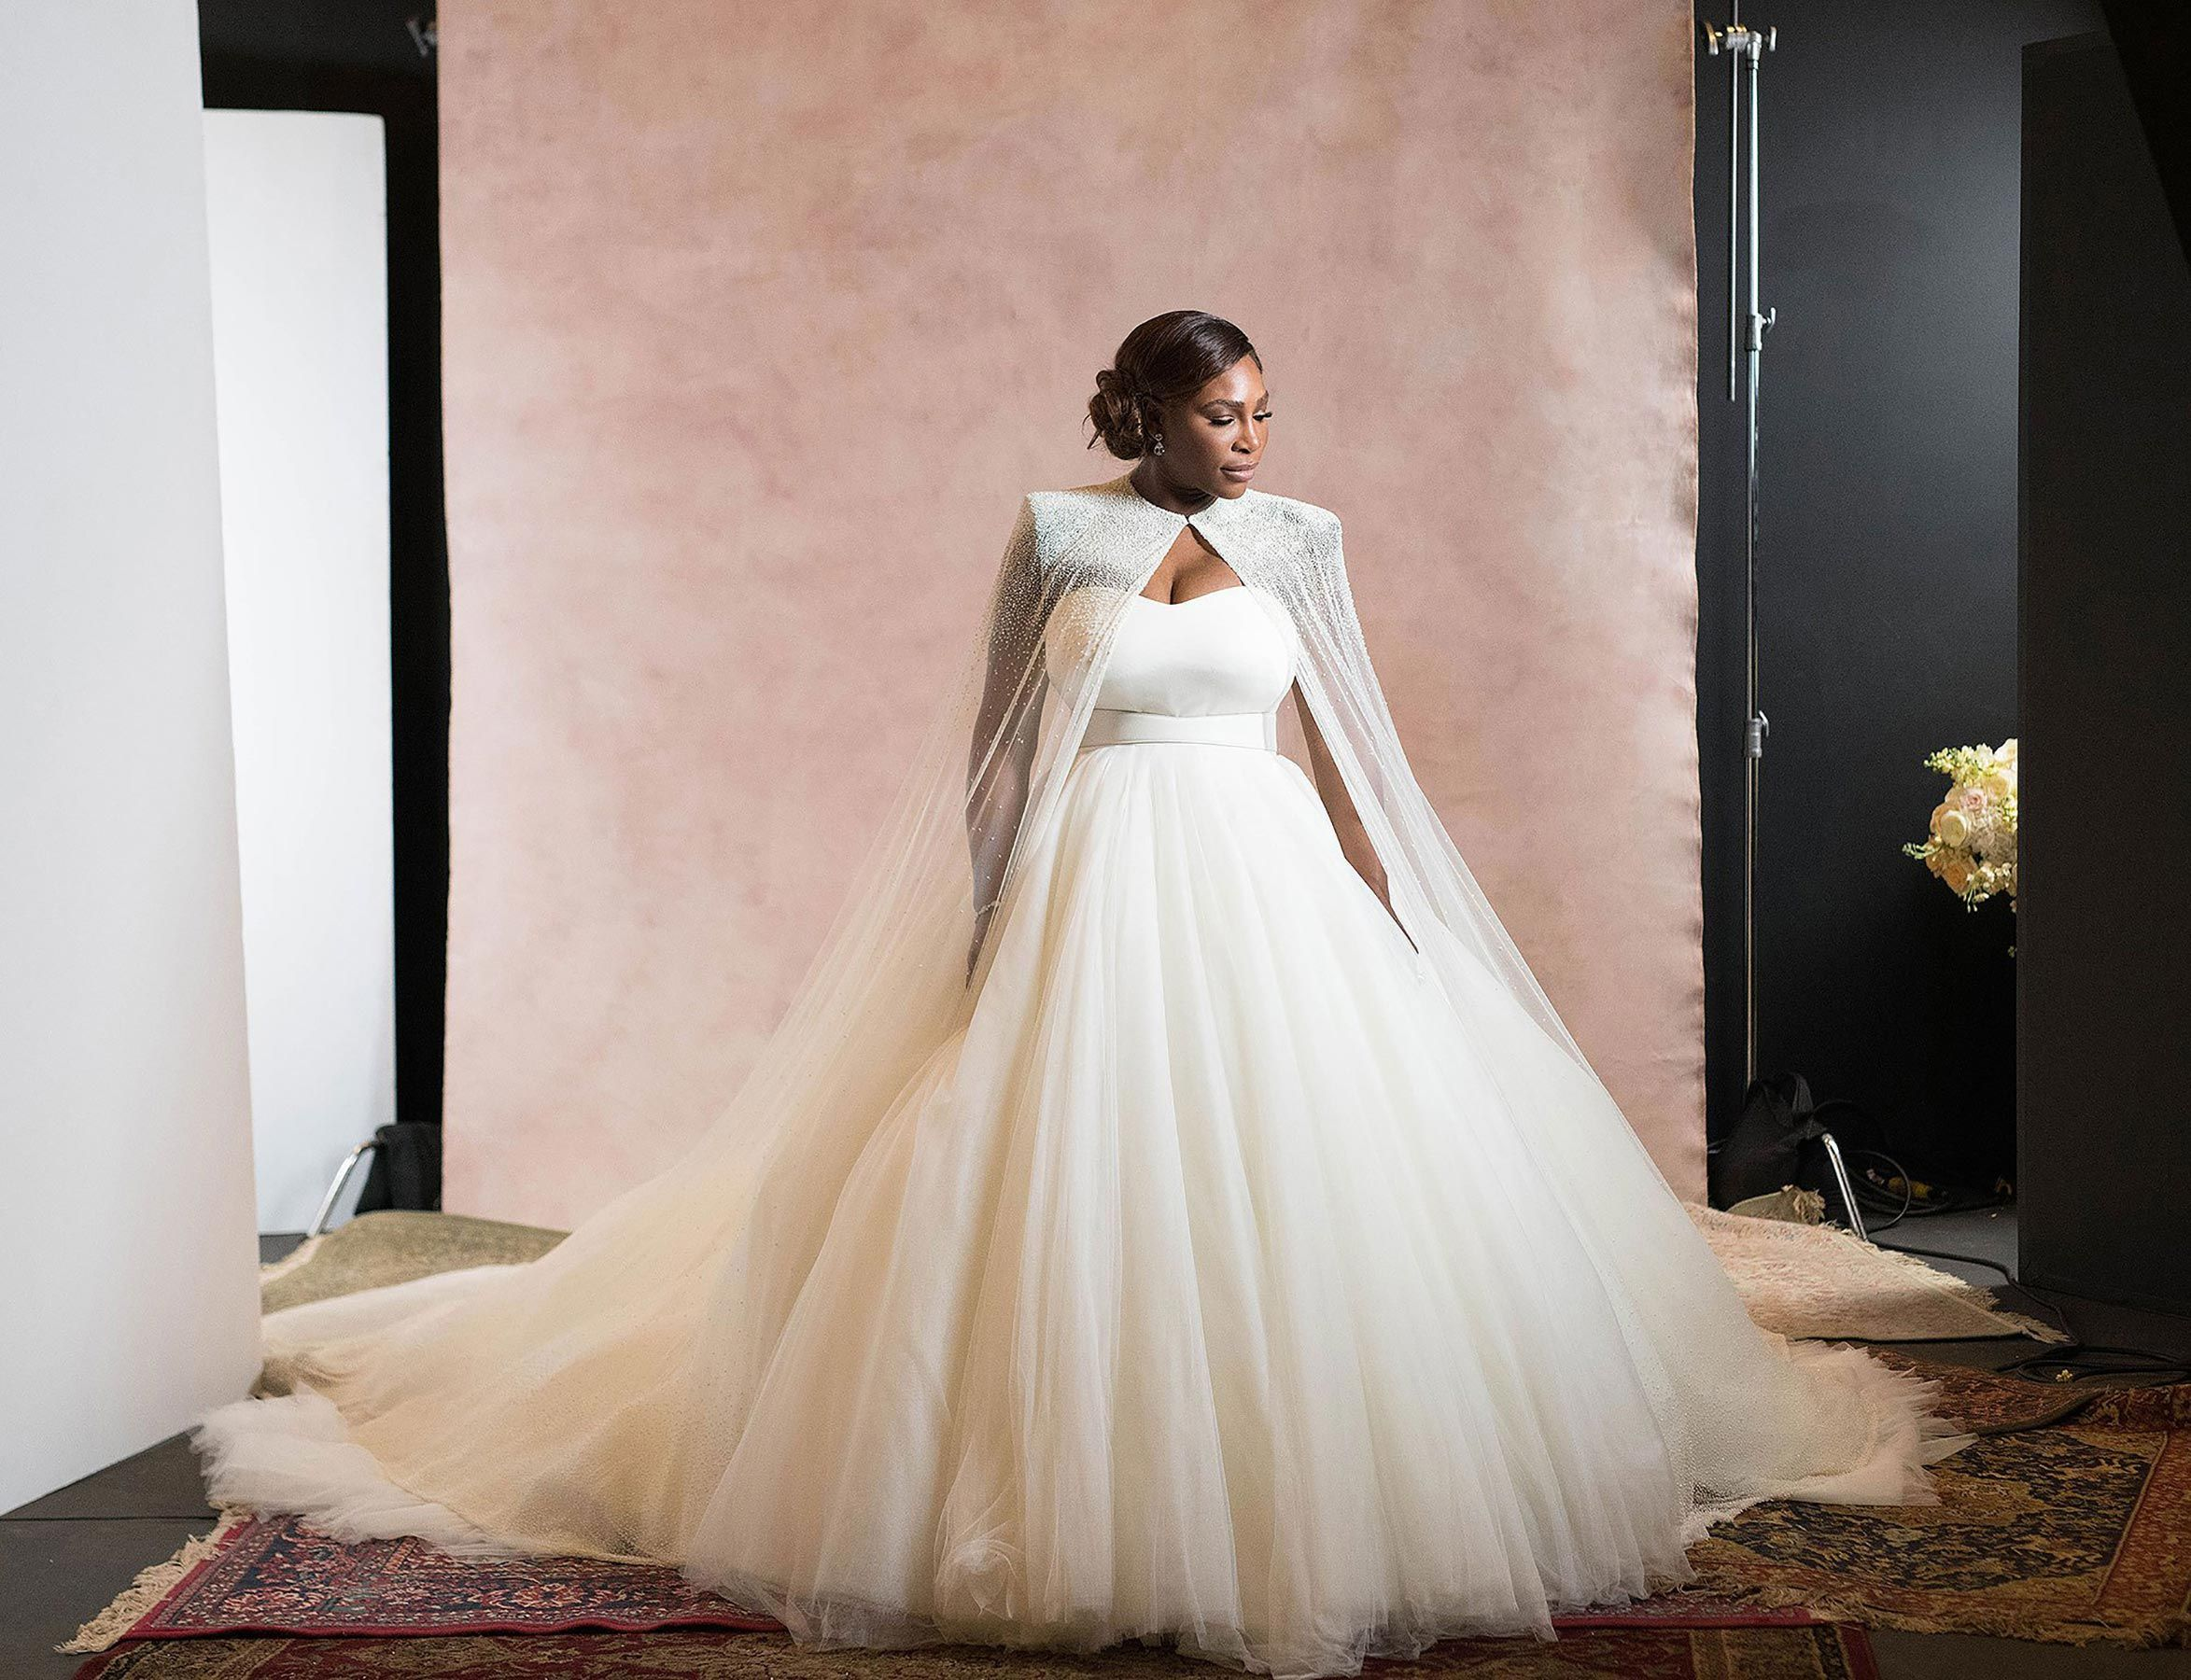 17cc42a251c5 Serena Williams' wedding dress photos are here! Get all the details ...